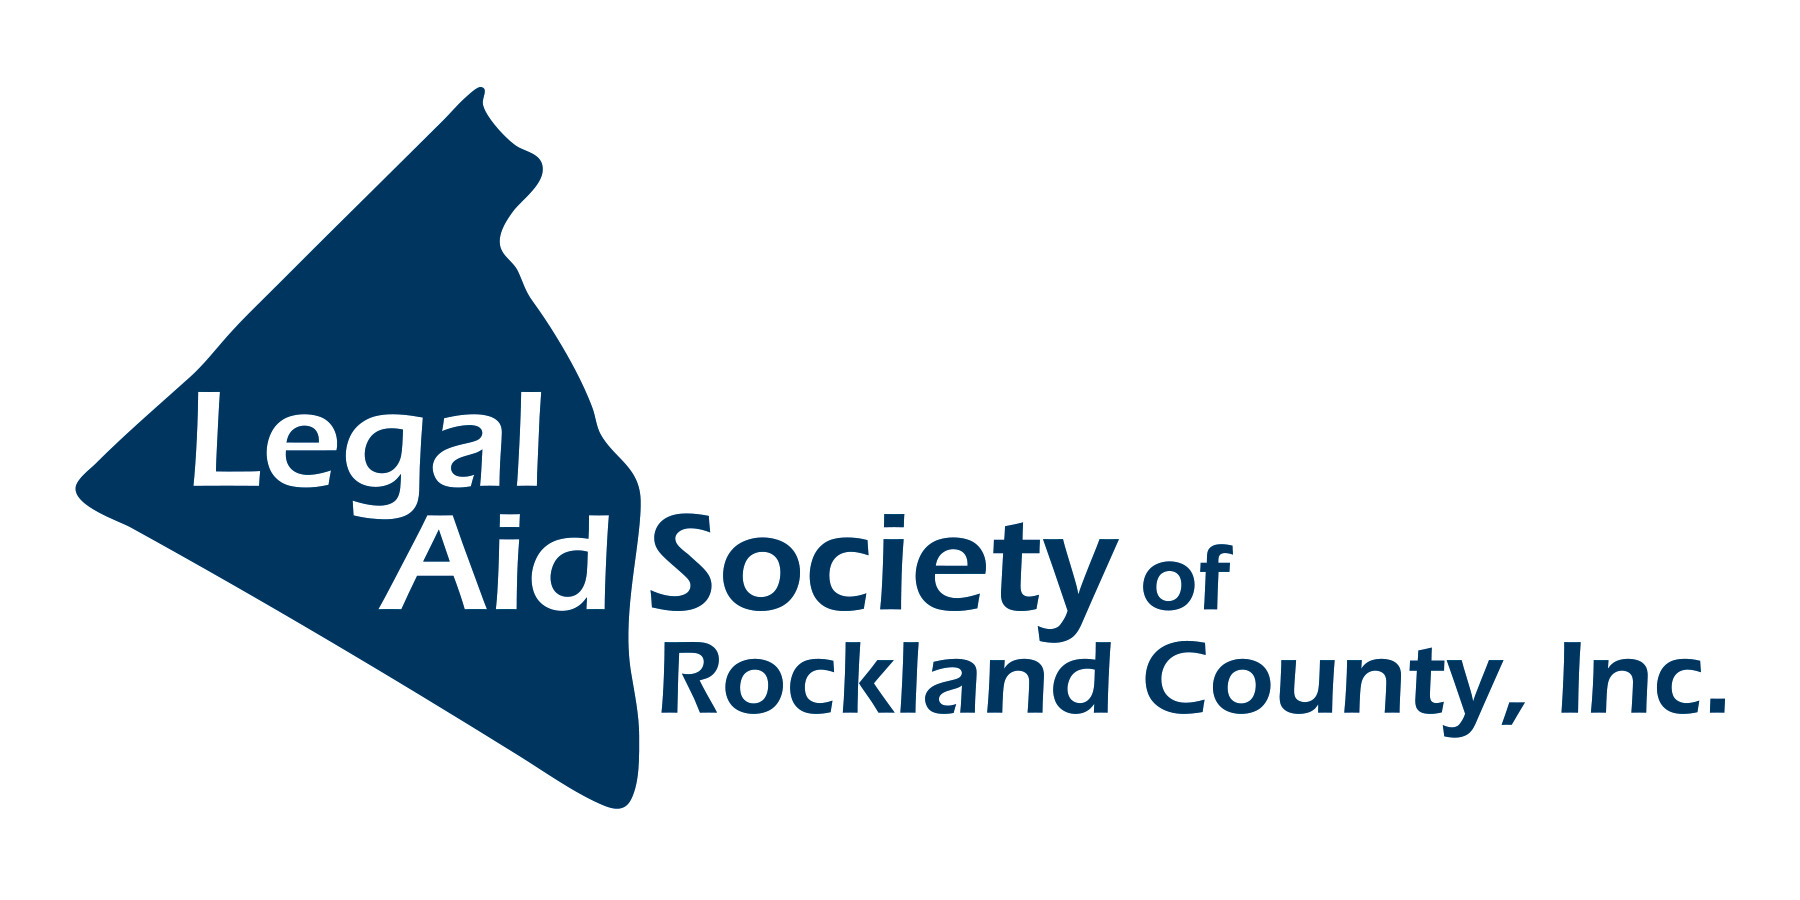 Legal Aid Society of Rockland